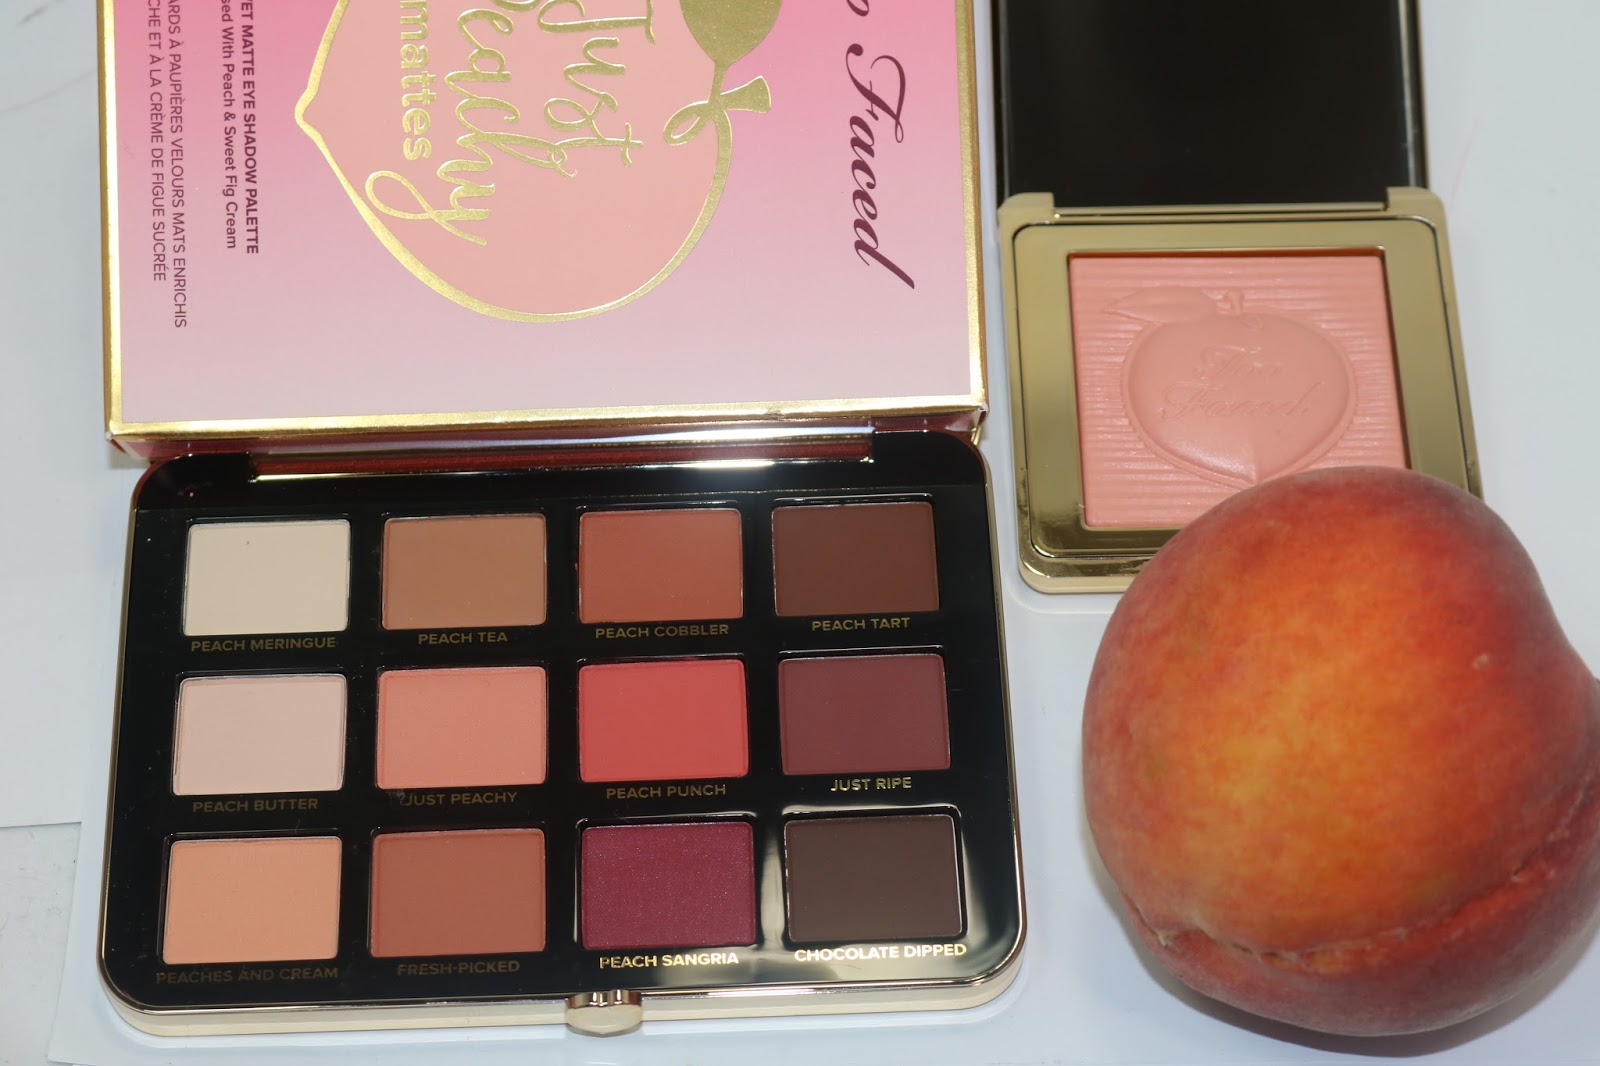 TooFaced Peaches and Cream Collection